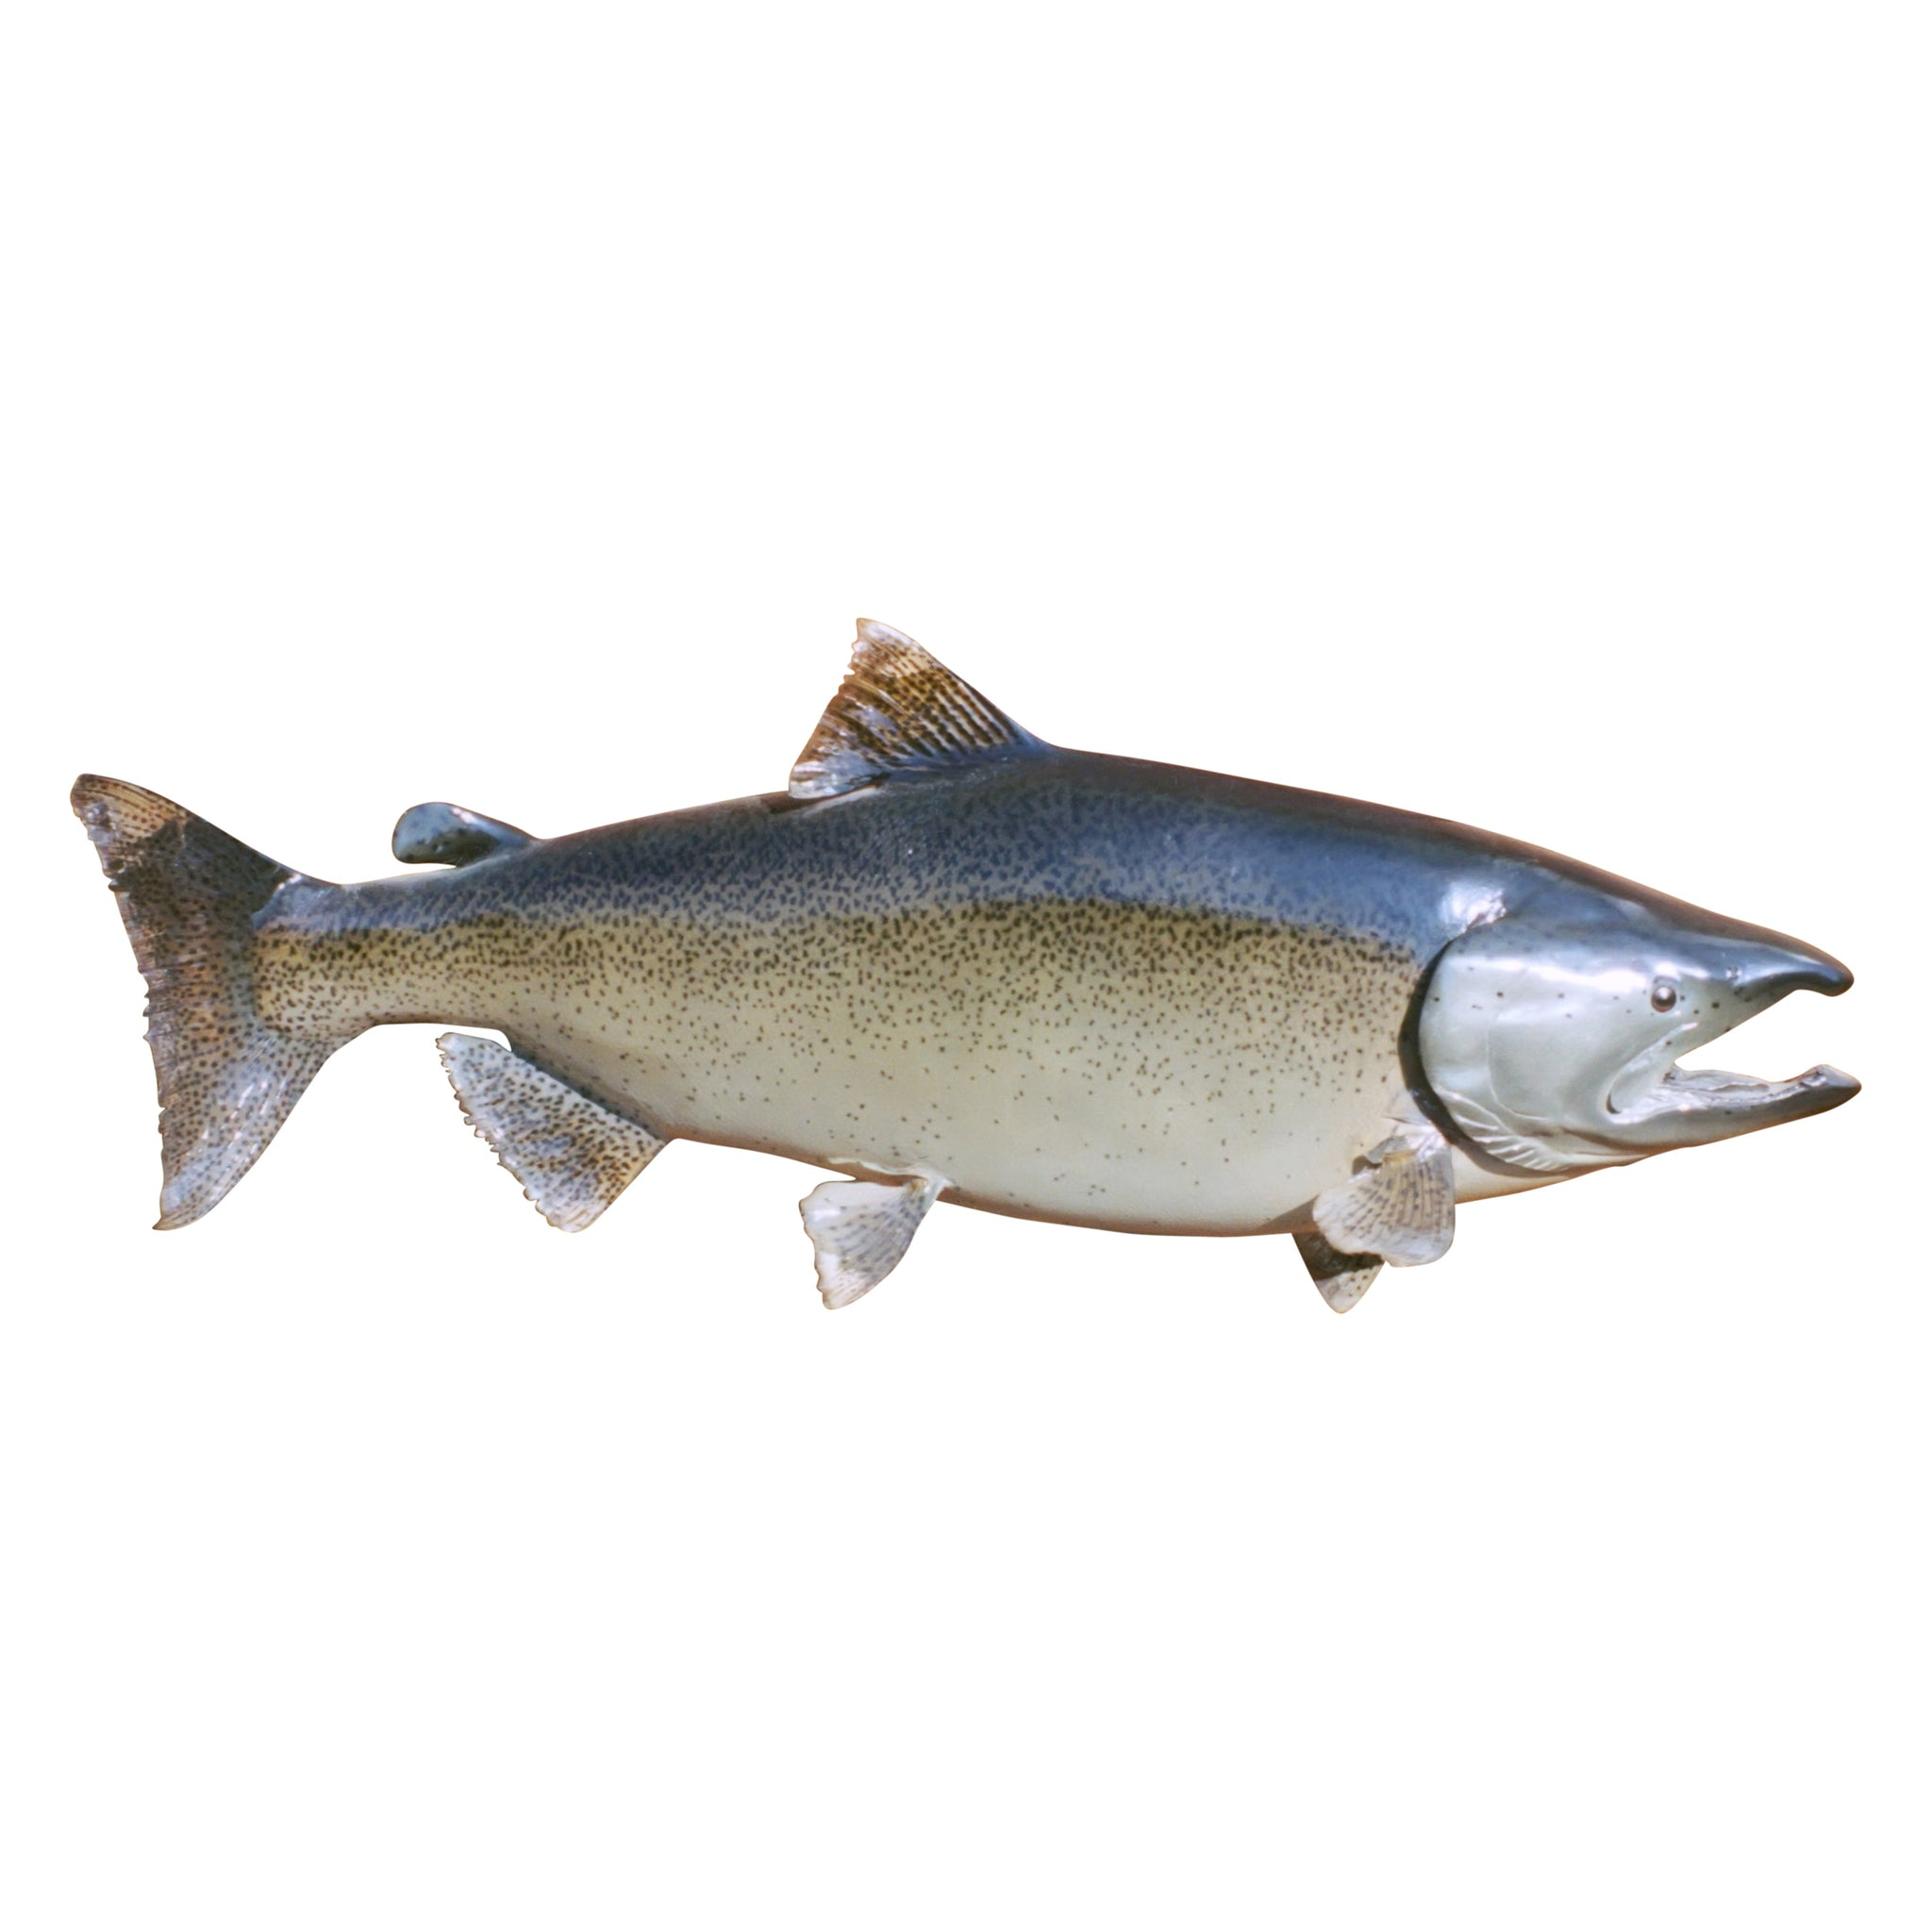 Lake Trout Mount fish, taxidermy